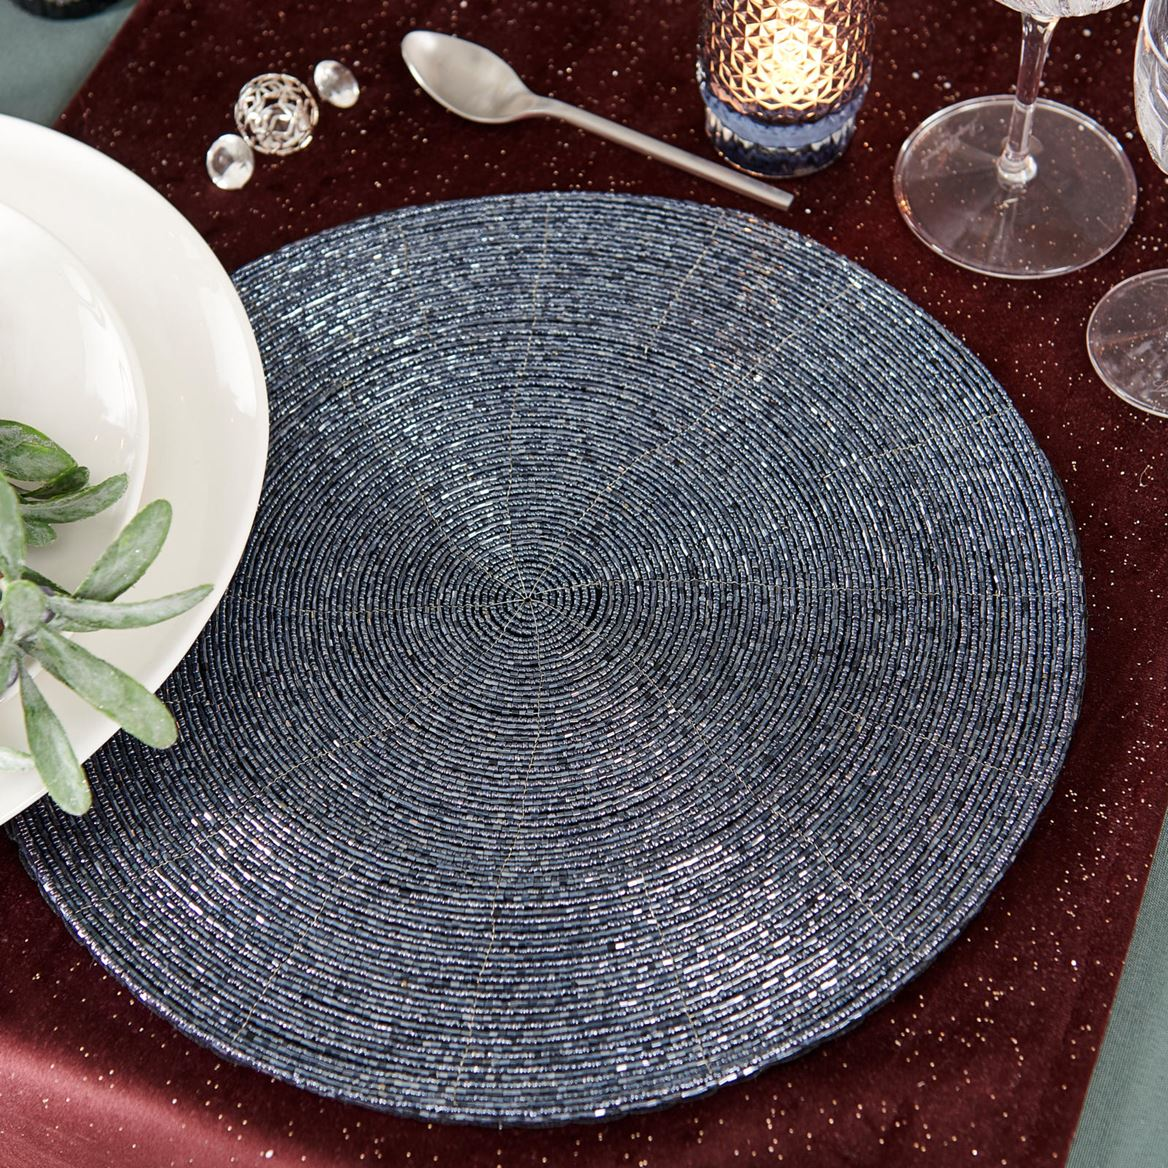 PEARLY ICE Placemat blauw Ø 35 cm_pearly-ice-placemat-blauw-ø-35-cm